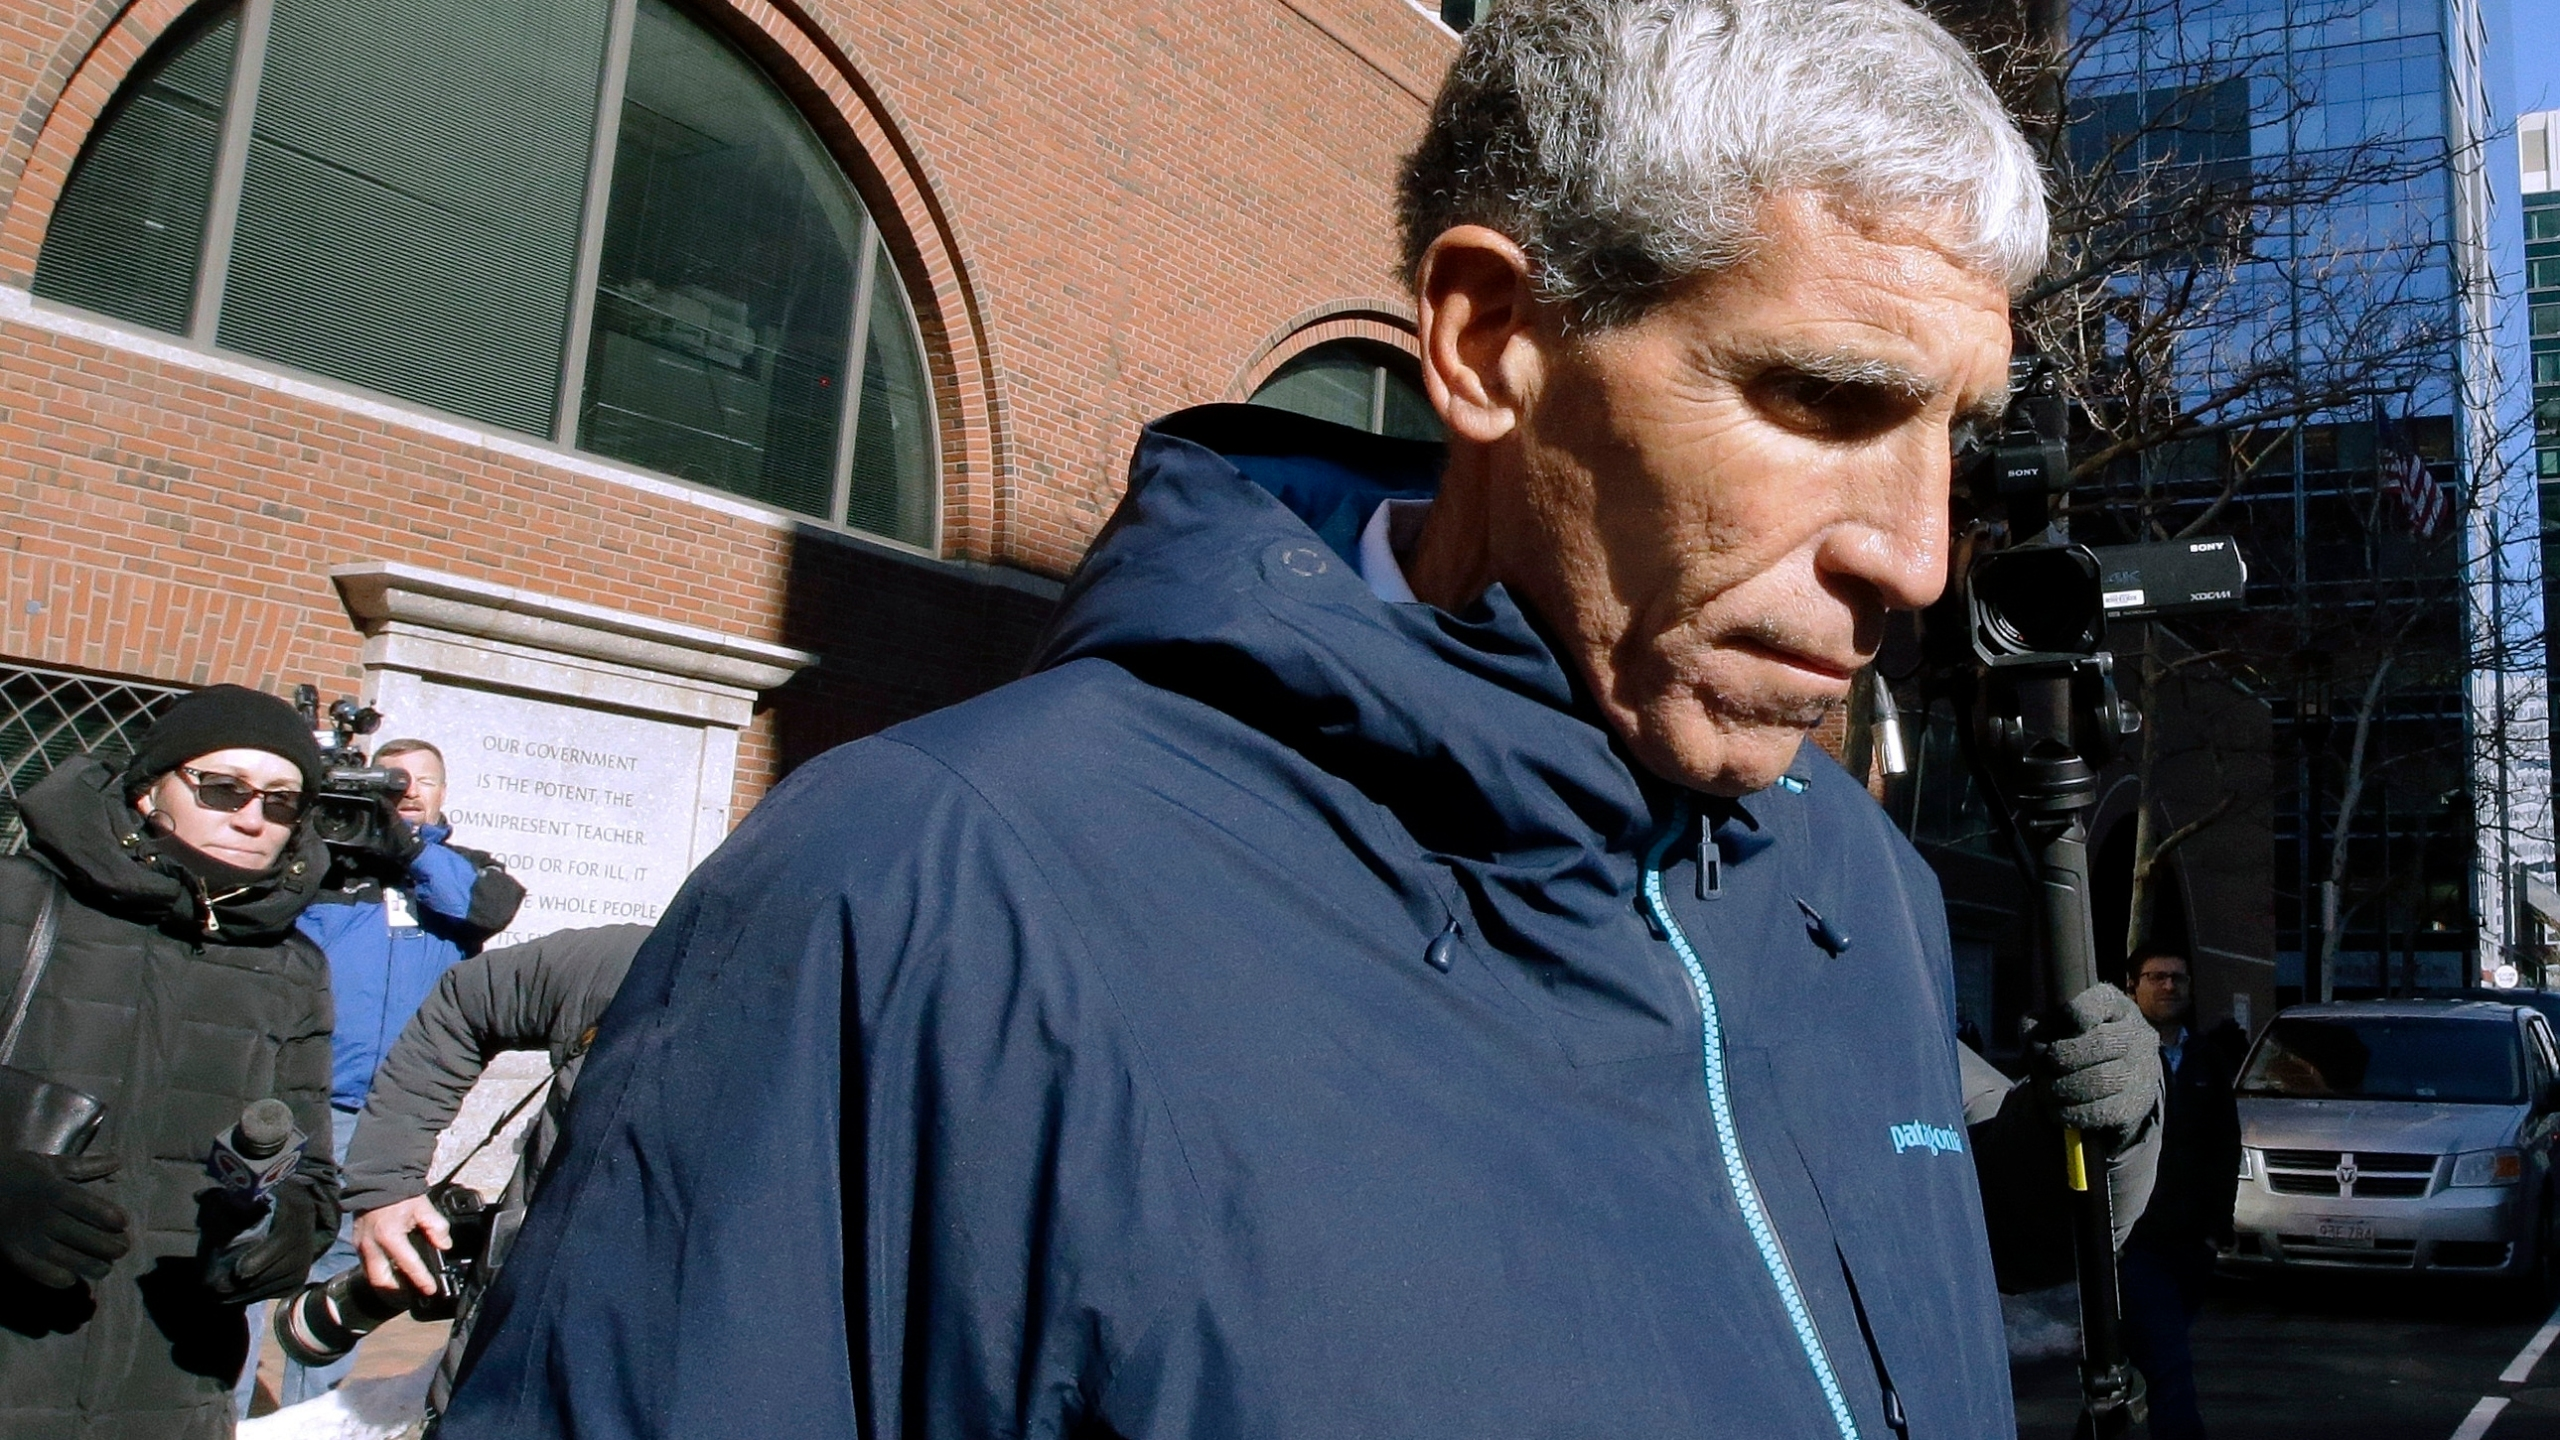 """In this March 12, 2019 file photo, William """"Rick"""" Singer founder of the Edge College & Career Network, departs federal court in Boston, after he pleaded guilty to charges in a nationwide college admissions bribery scandal. The first trial in the """"Operation Varsity Blues"""" college admissions bribery scandal will begin this week, Wednesday, Sept. 8, 2021 with the potential to shed light on investigators' tactics and brighten the spotlight on a secretive school selection process many have long complained is rigged to favor the rich. (AP Photo/Steven Senne, File)"""